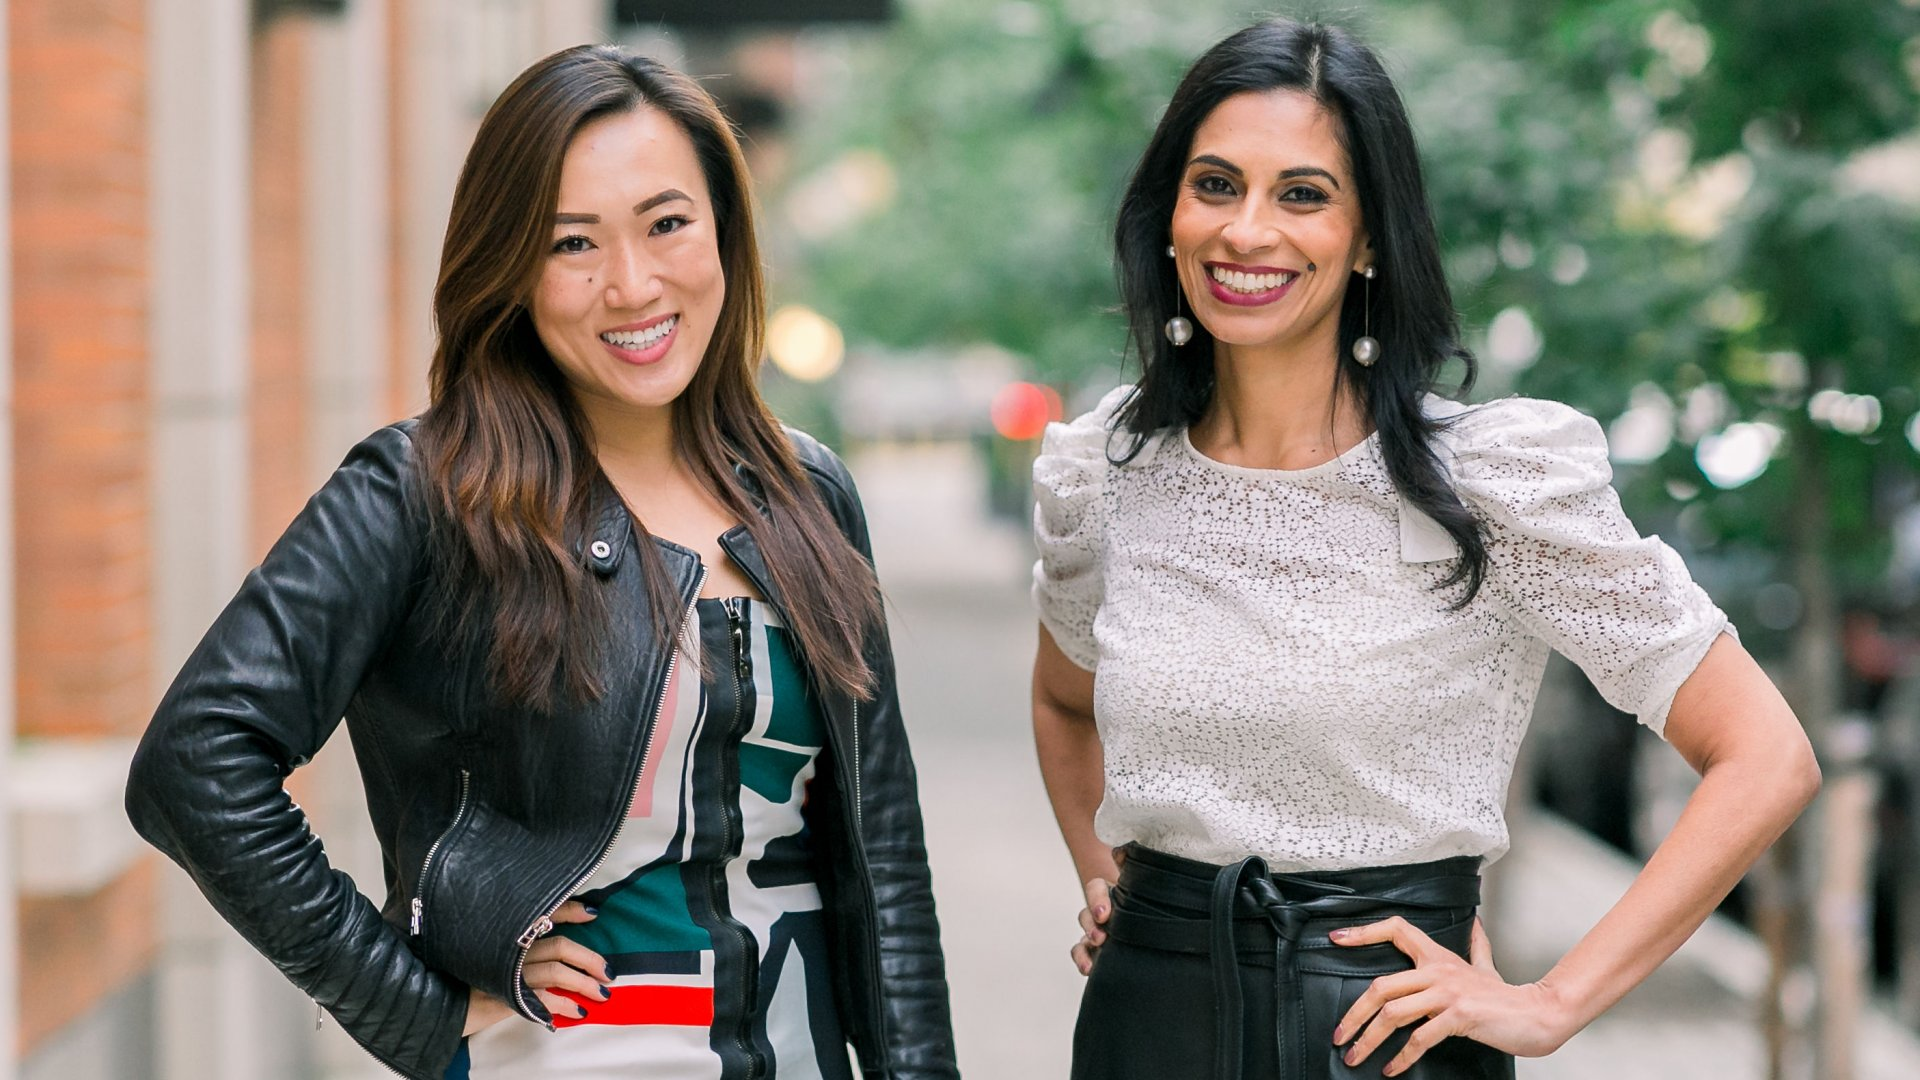 Female Founders Fund began in 2014 with a $6 million fund to back women-led companies. Partners Sutian Dong (left) and Anu Duggal closed their second fund in 2018, raising $27 million.